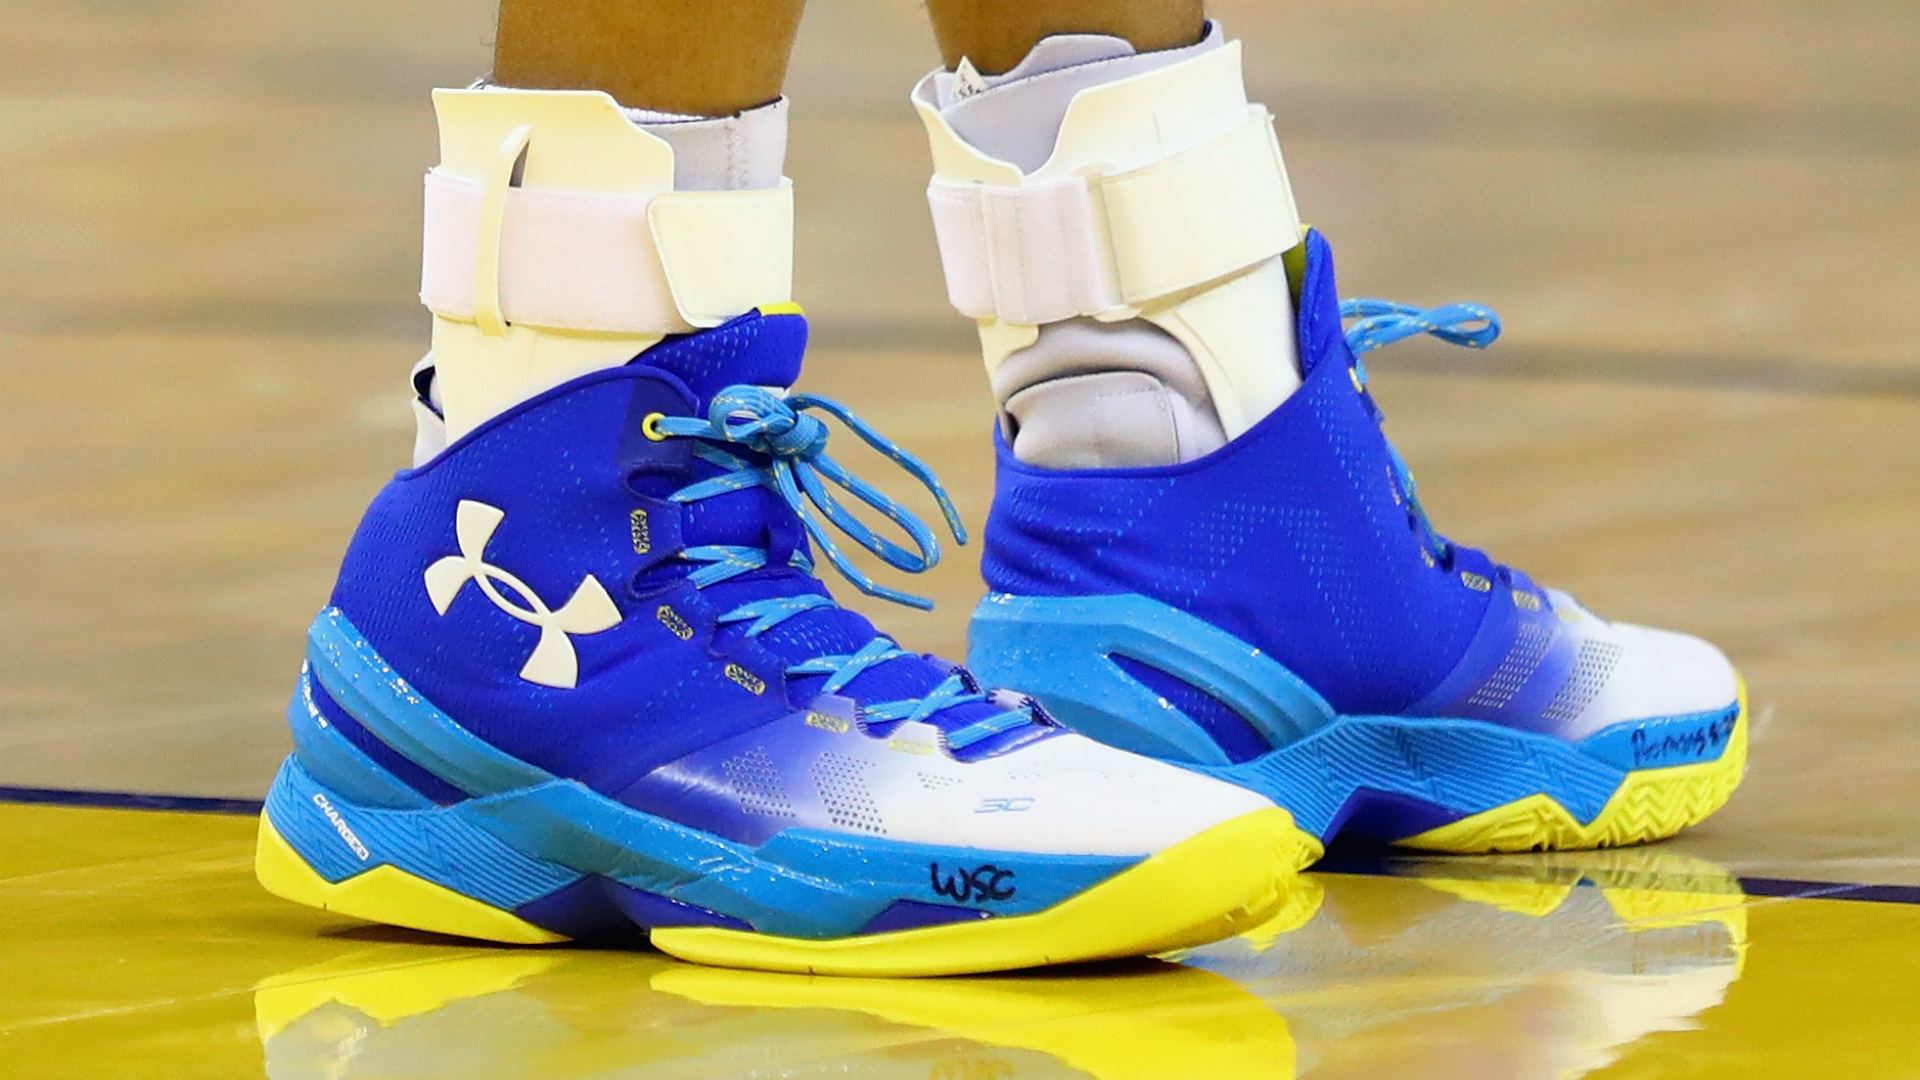 Under Armor Shoes Stephen Curry 2017 - Style Guru: Fashion ...